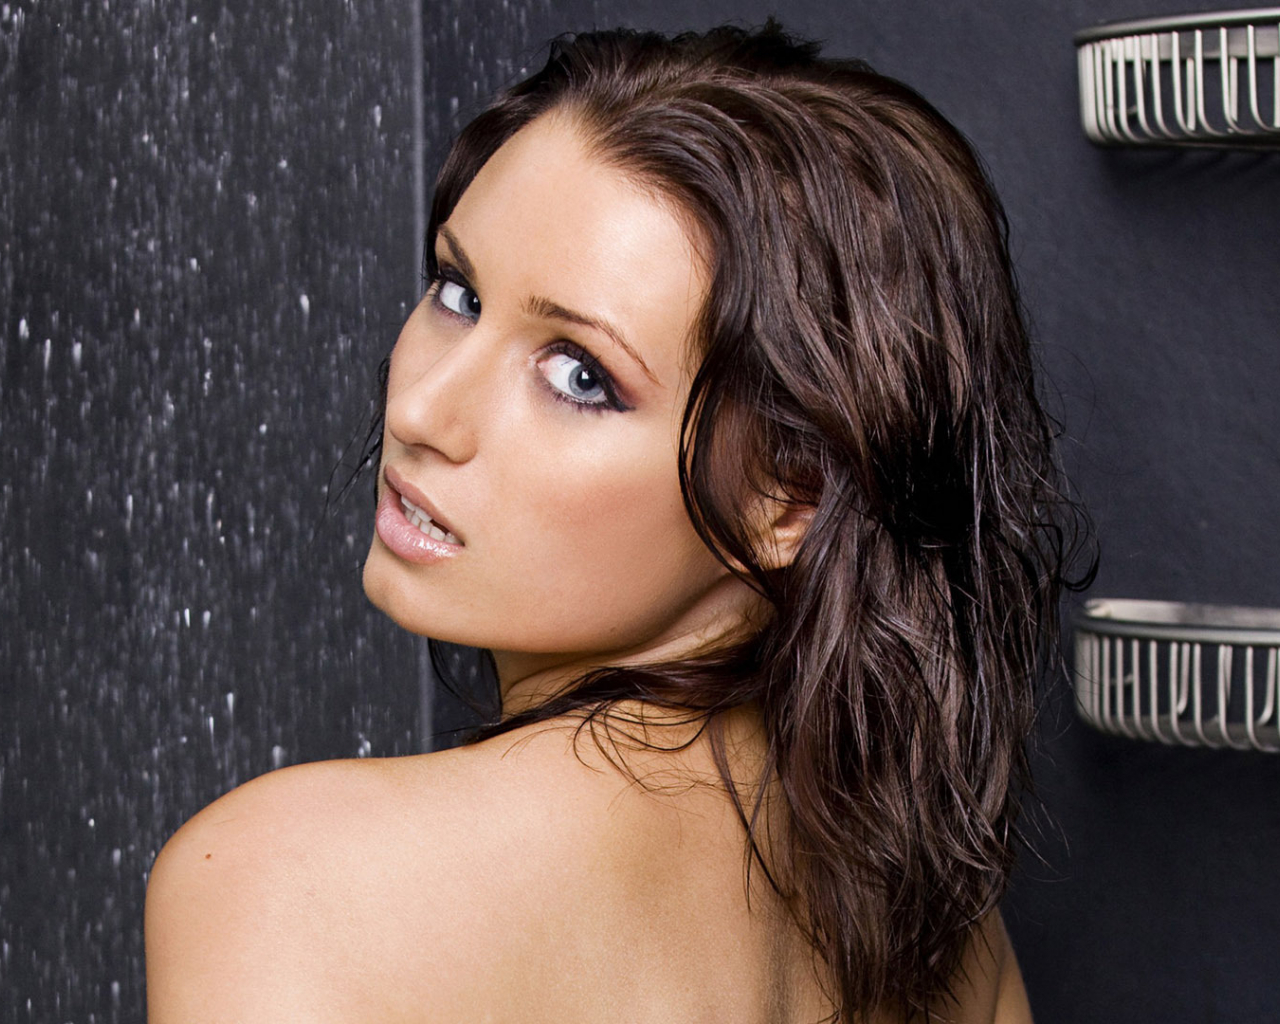 Images Sammy Braddy naked (61 photos), Pussy, Paparazzi, Instagram, butt 2020